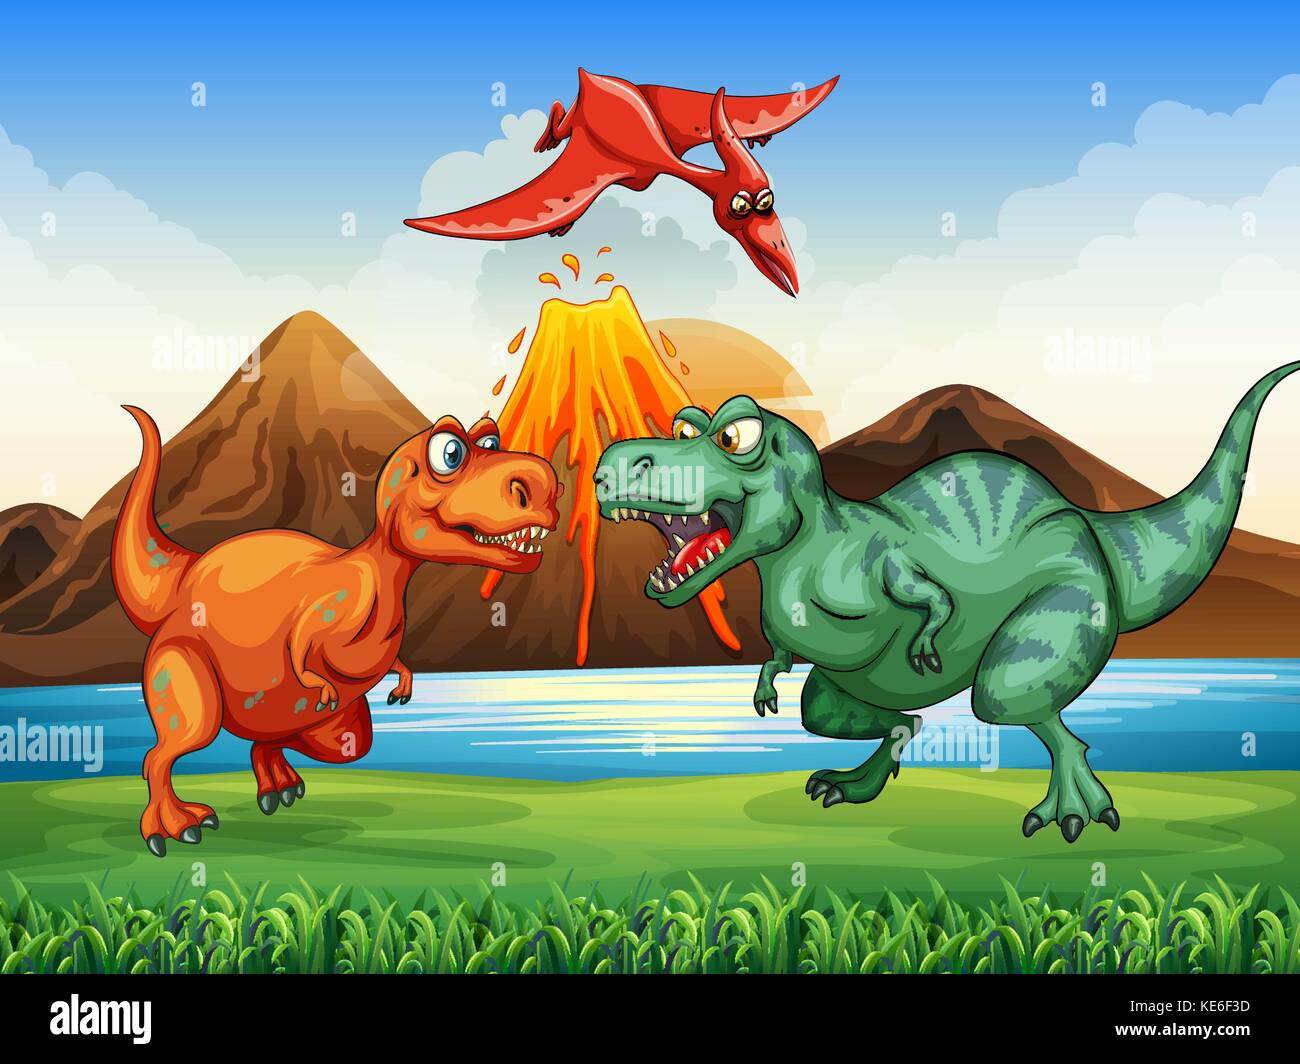 Dinosaurs fighting in the field illustration - Stock Vector